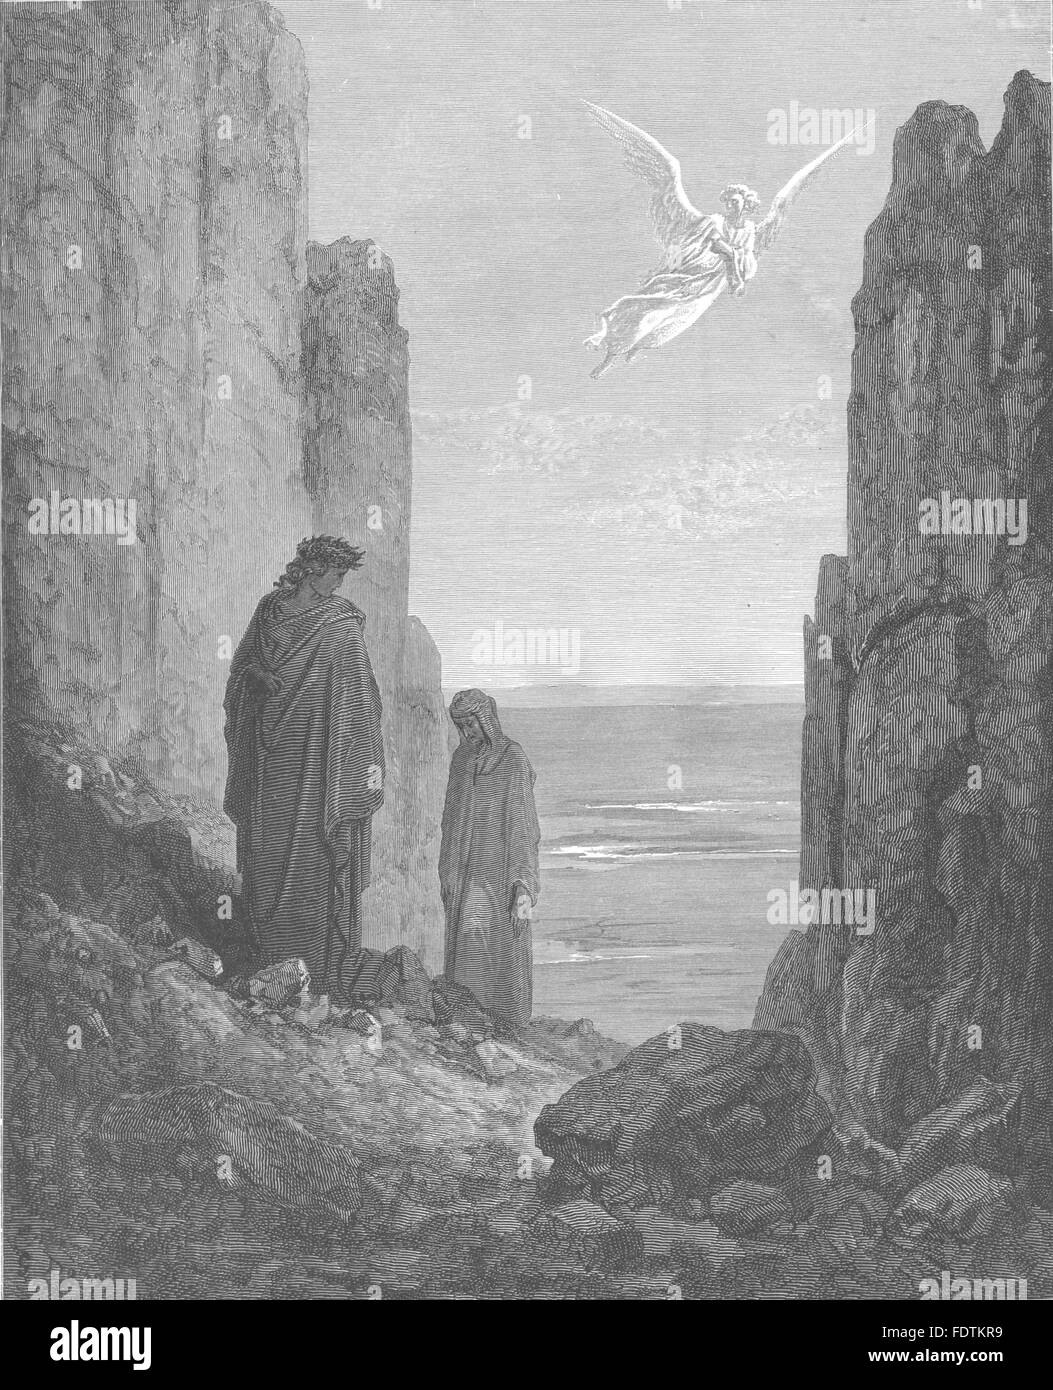 DANTE: Aileth thee, that still thou Look'st earth? began my leader, print 1893 - Stock Image